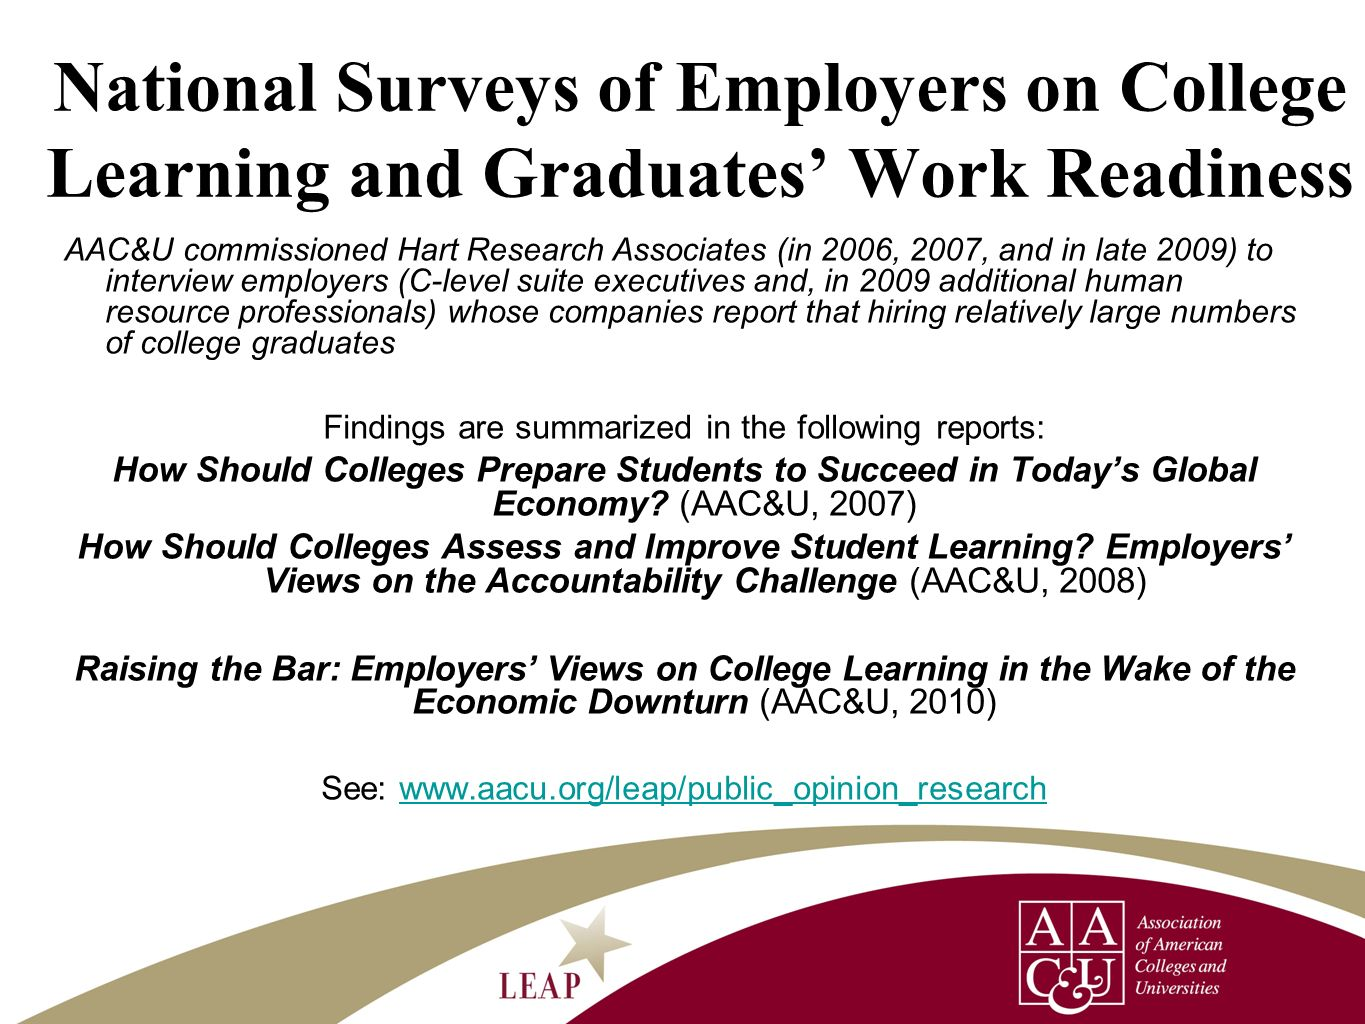 National Surveys of Employers on College Learning and Graduates Work Readiness AAC&U commissioned Hart Research Associates (in 2006, 2007, and in late